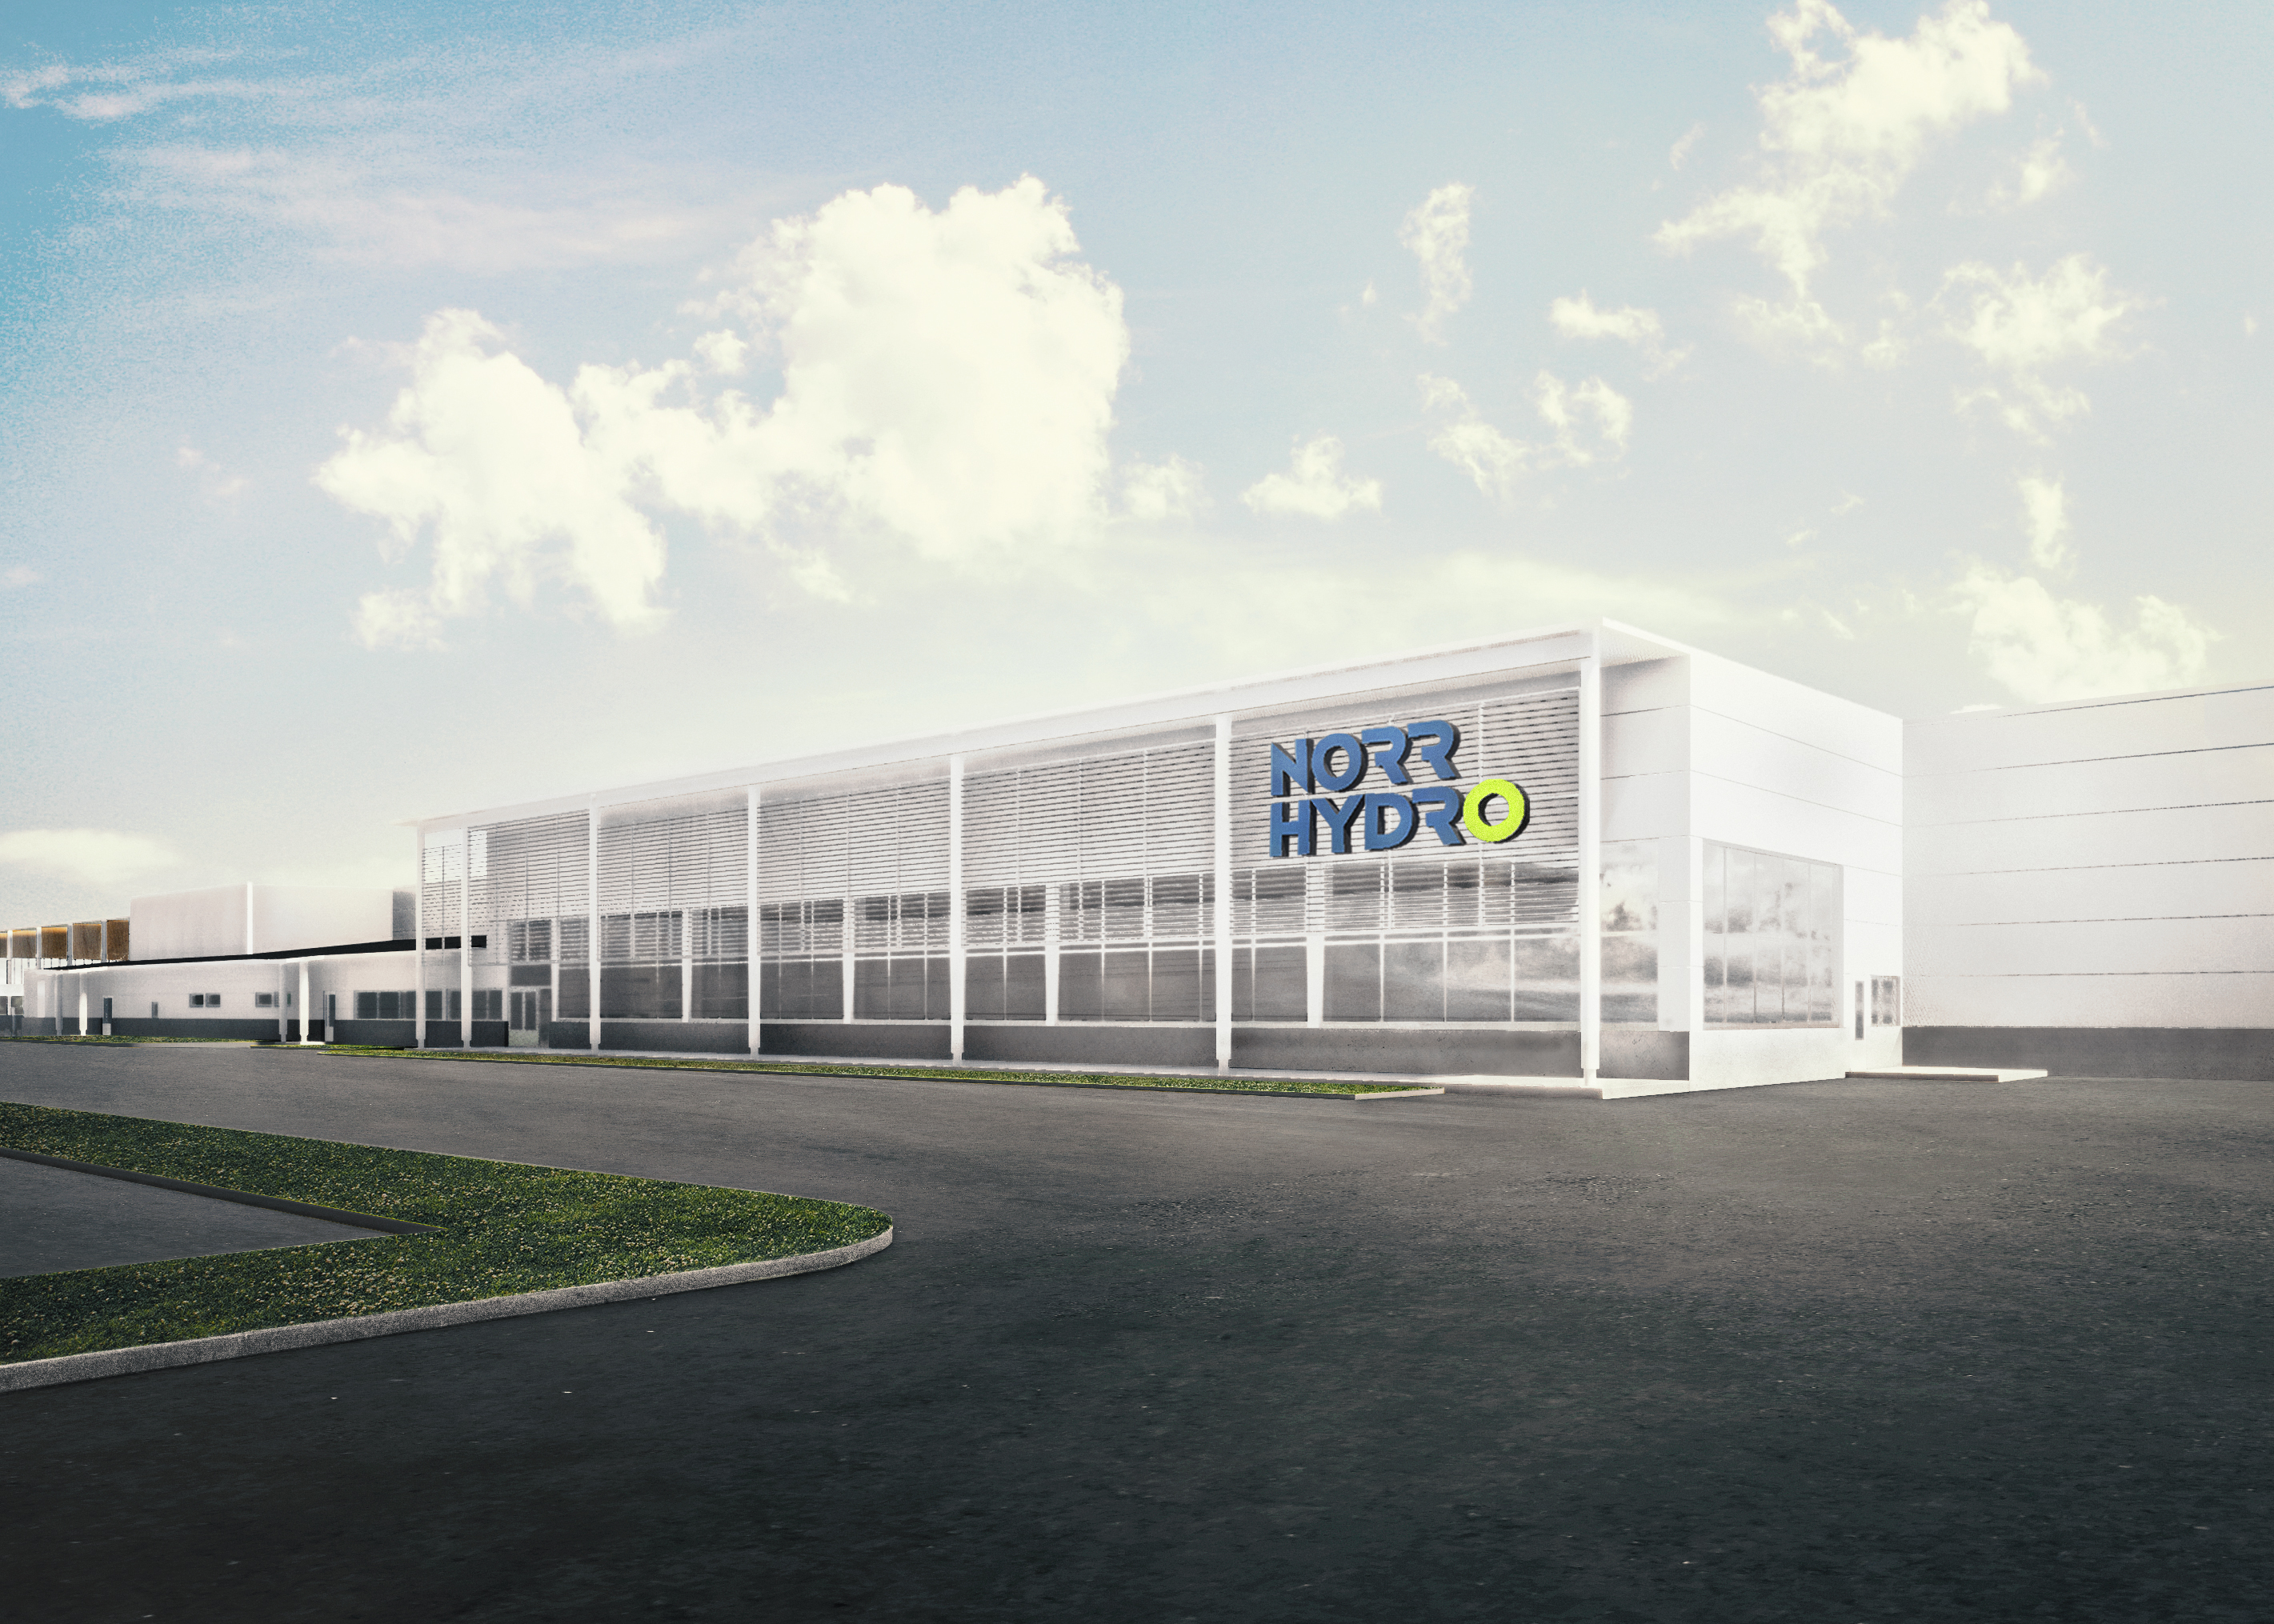 Norrhydro will open new production facility 2022